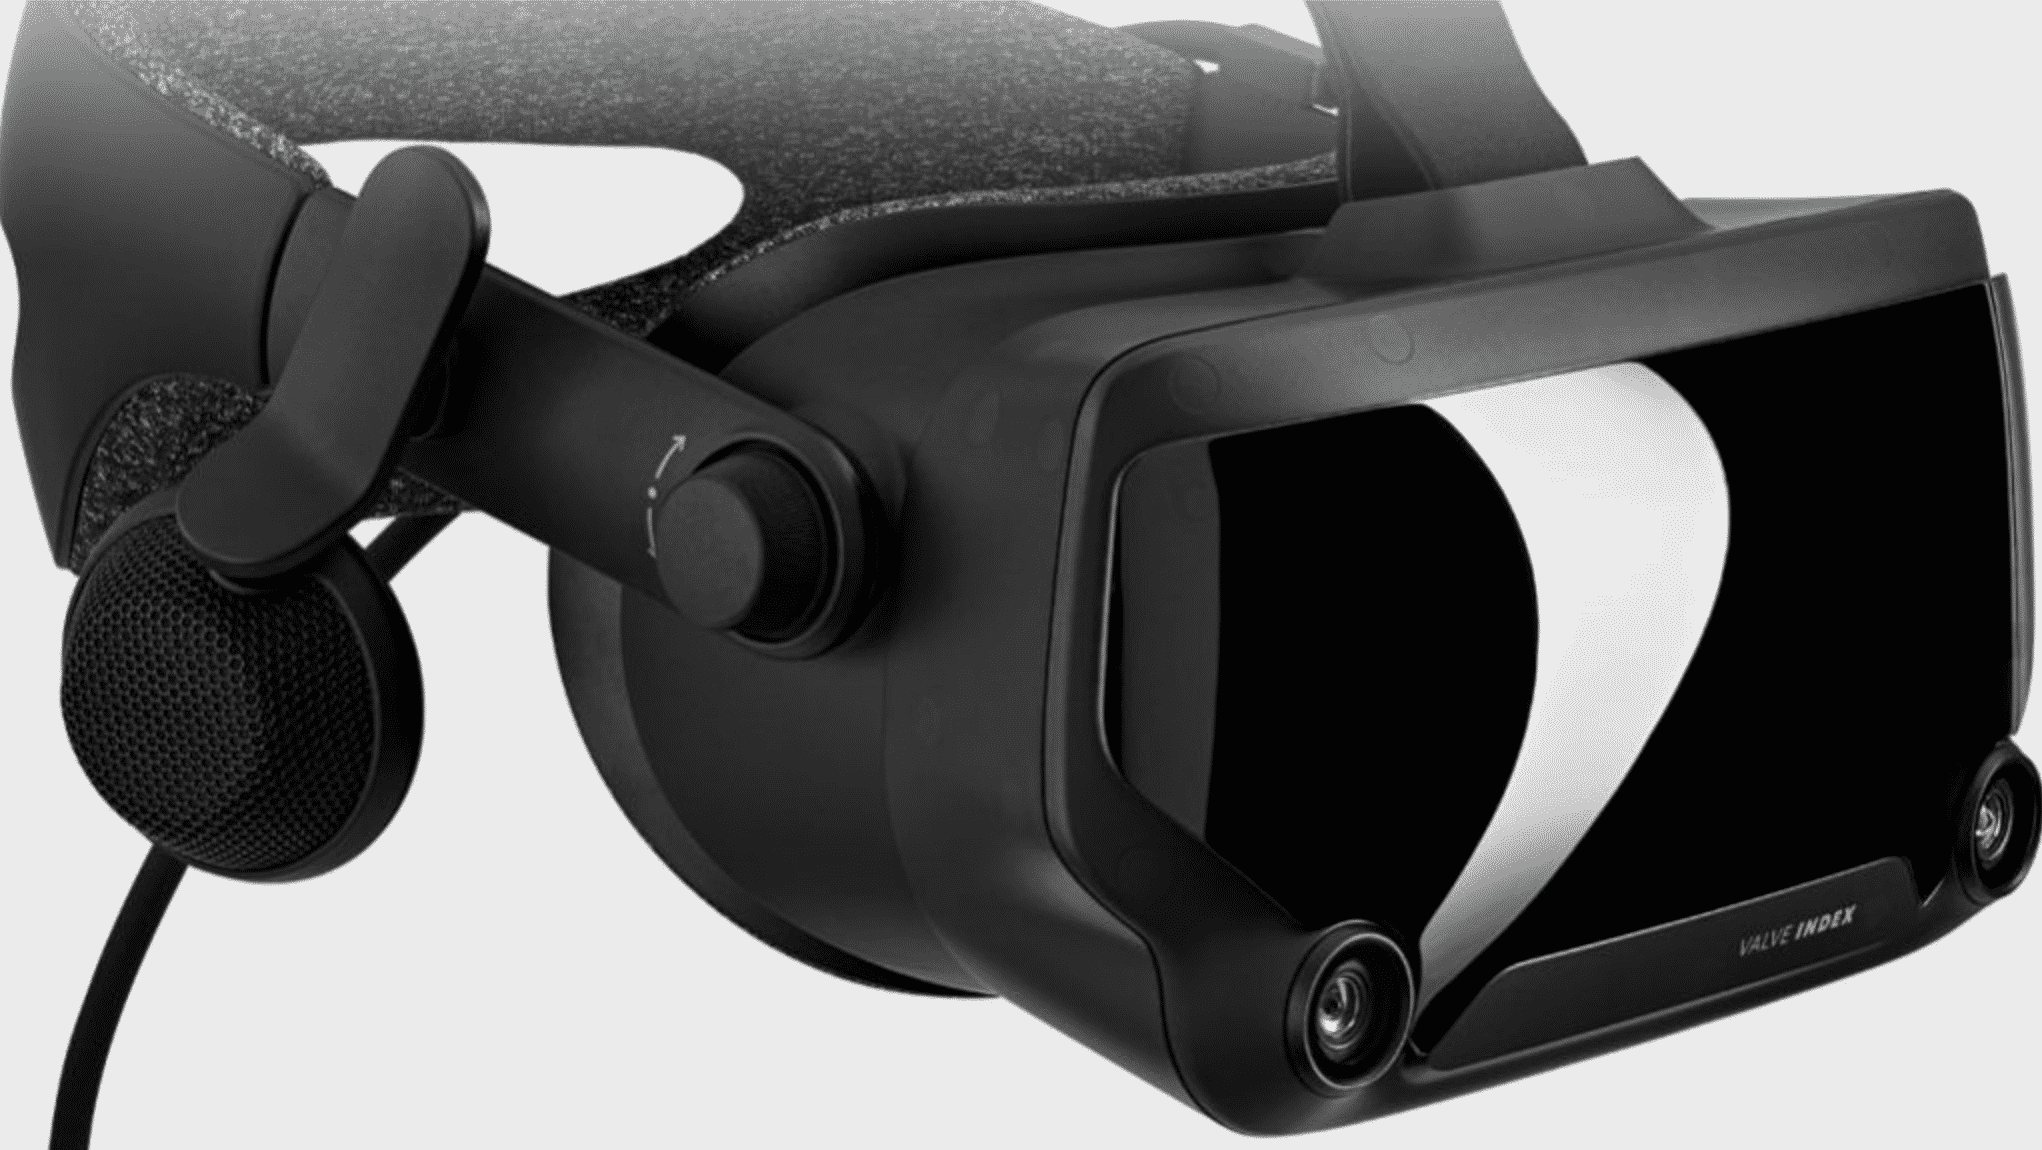 Apple and Valve Team Up to Develop an AR Headset, According to Report